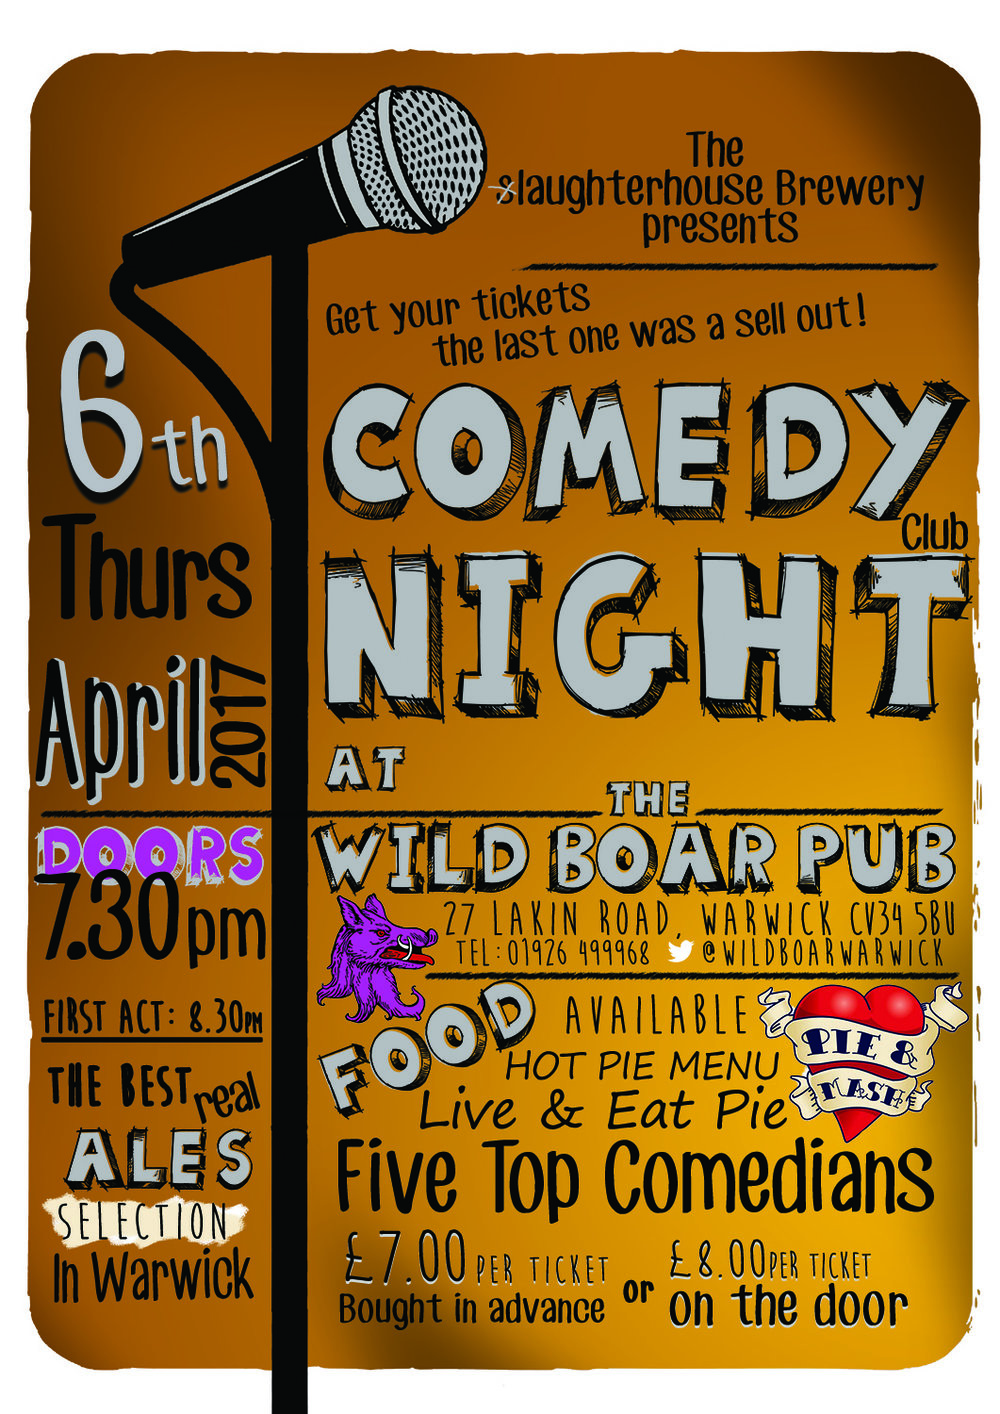 Comedy night at the wild boar